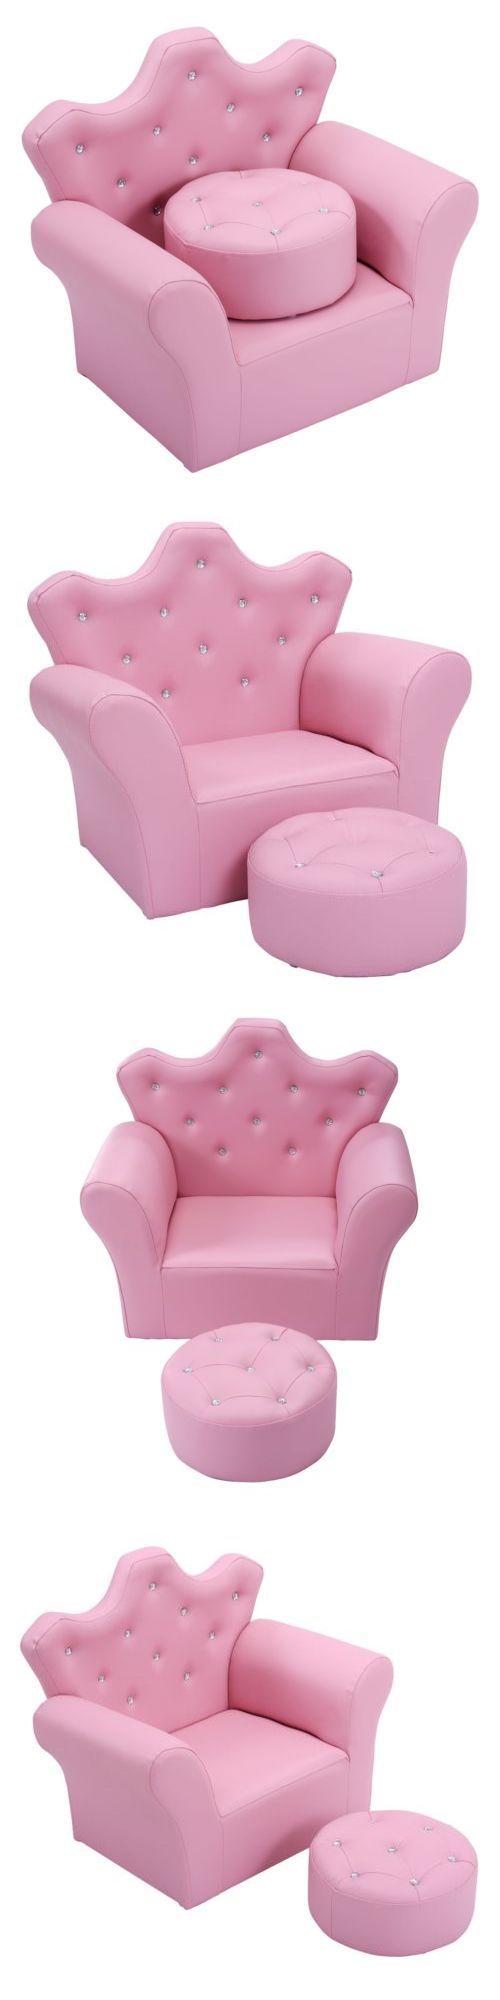 Sofas and Armchairs 134648: Pink Princess Sofa Armchair Couch Children Toddler Birthday Gift W Ottoman 23 -> BUY IT NOW ONLY: $66.49 on eBay!